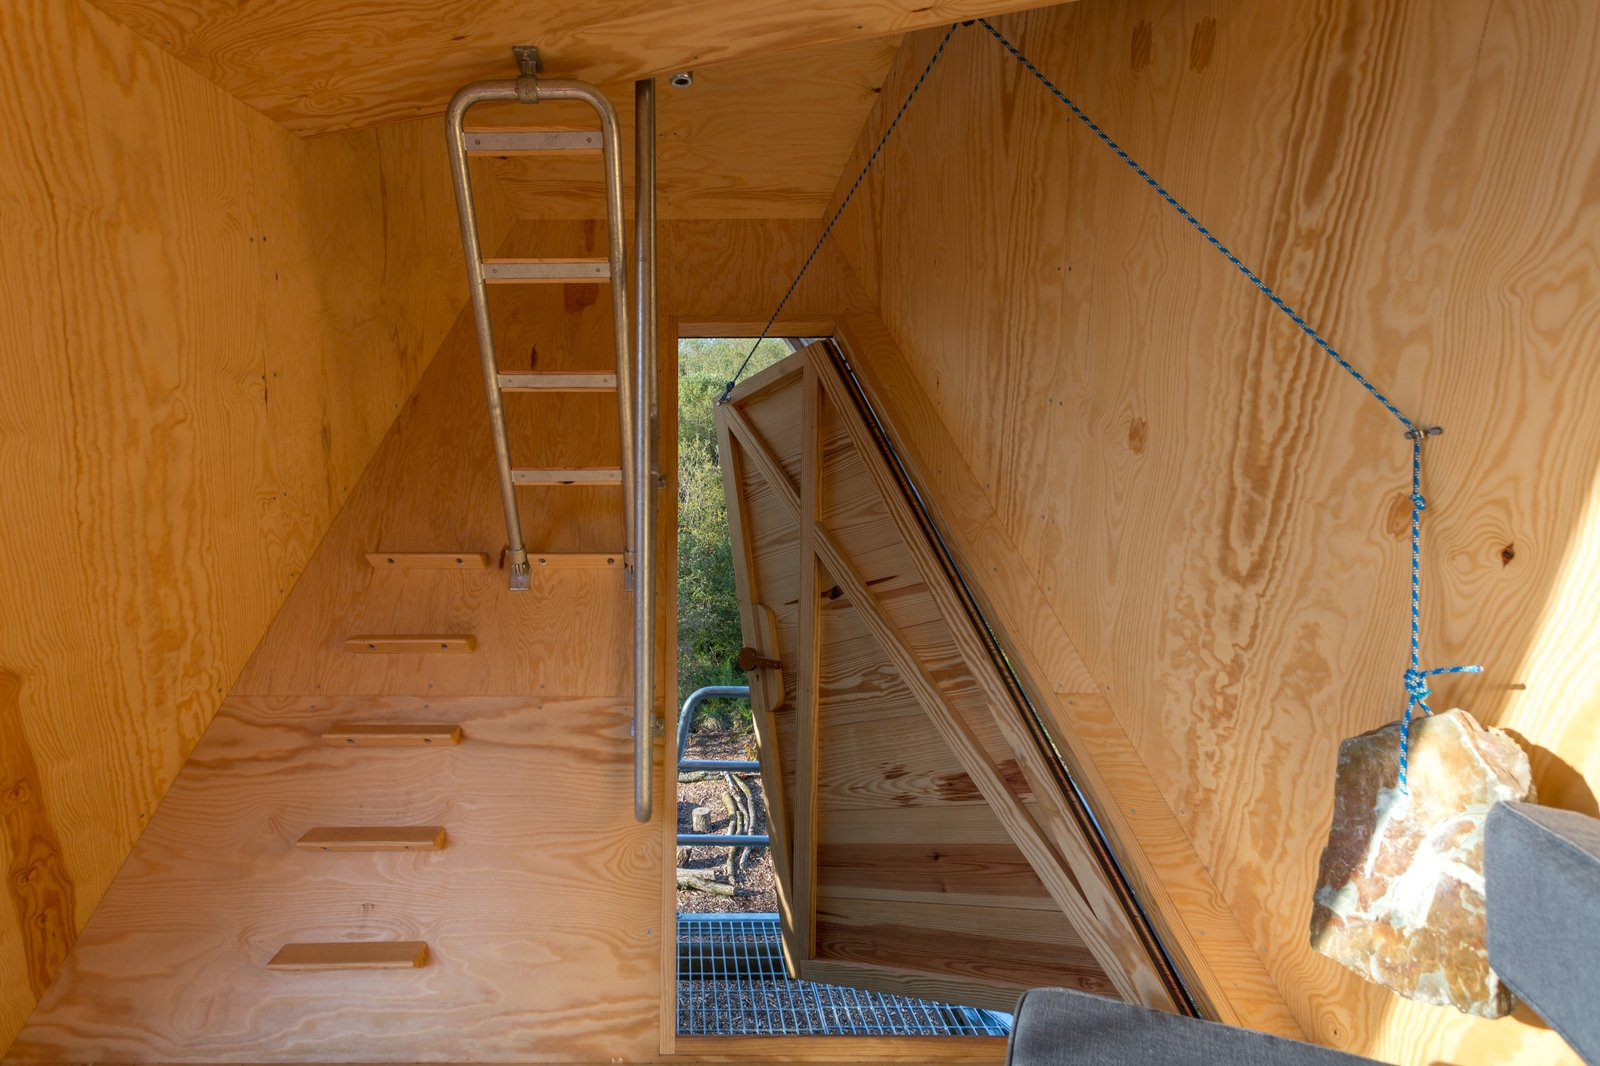 Doors, Swing Door Type, Exterior, and Wood The cabins come equipped with minimalist interiors and pulley-operated doors.   Photo 7 of 12 in Go Off The Grid With These Remote Rental Cabins in Cornwall